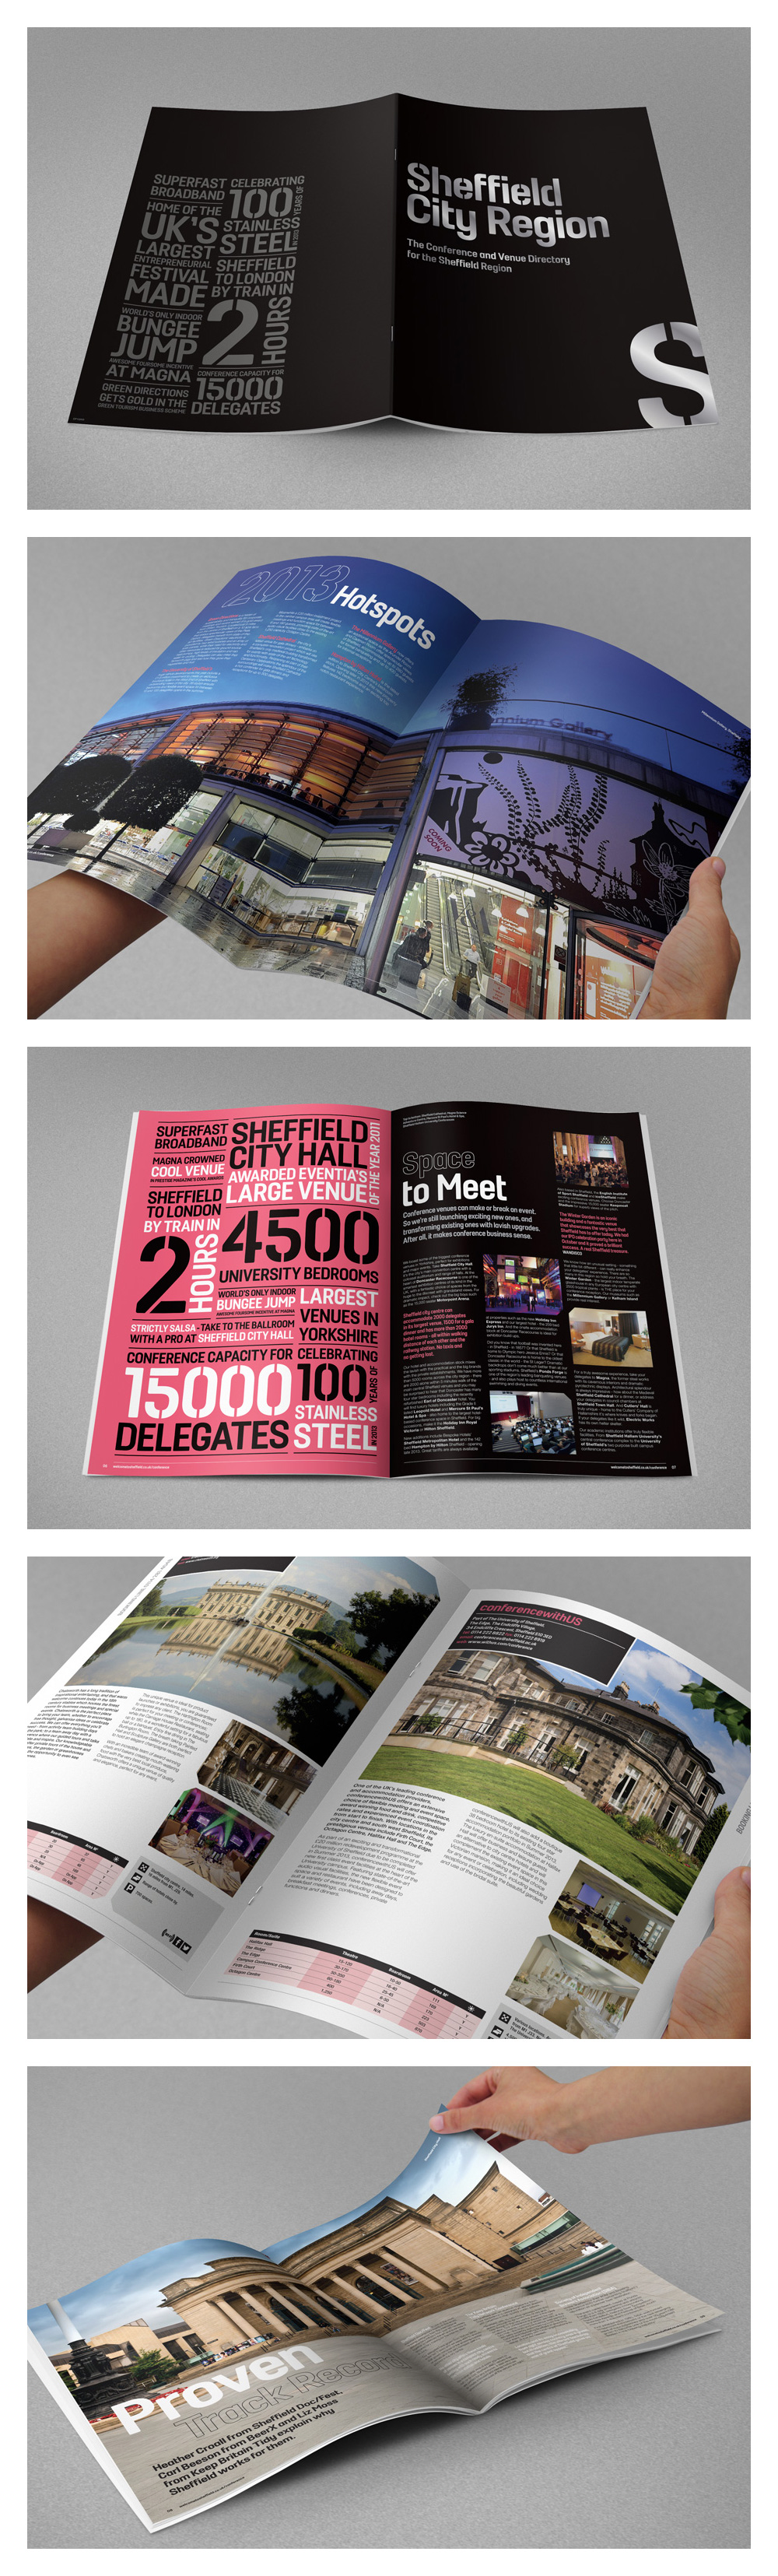 Digital spreads from the Conference and Venue Directory